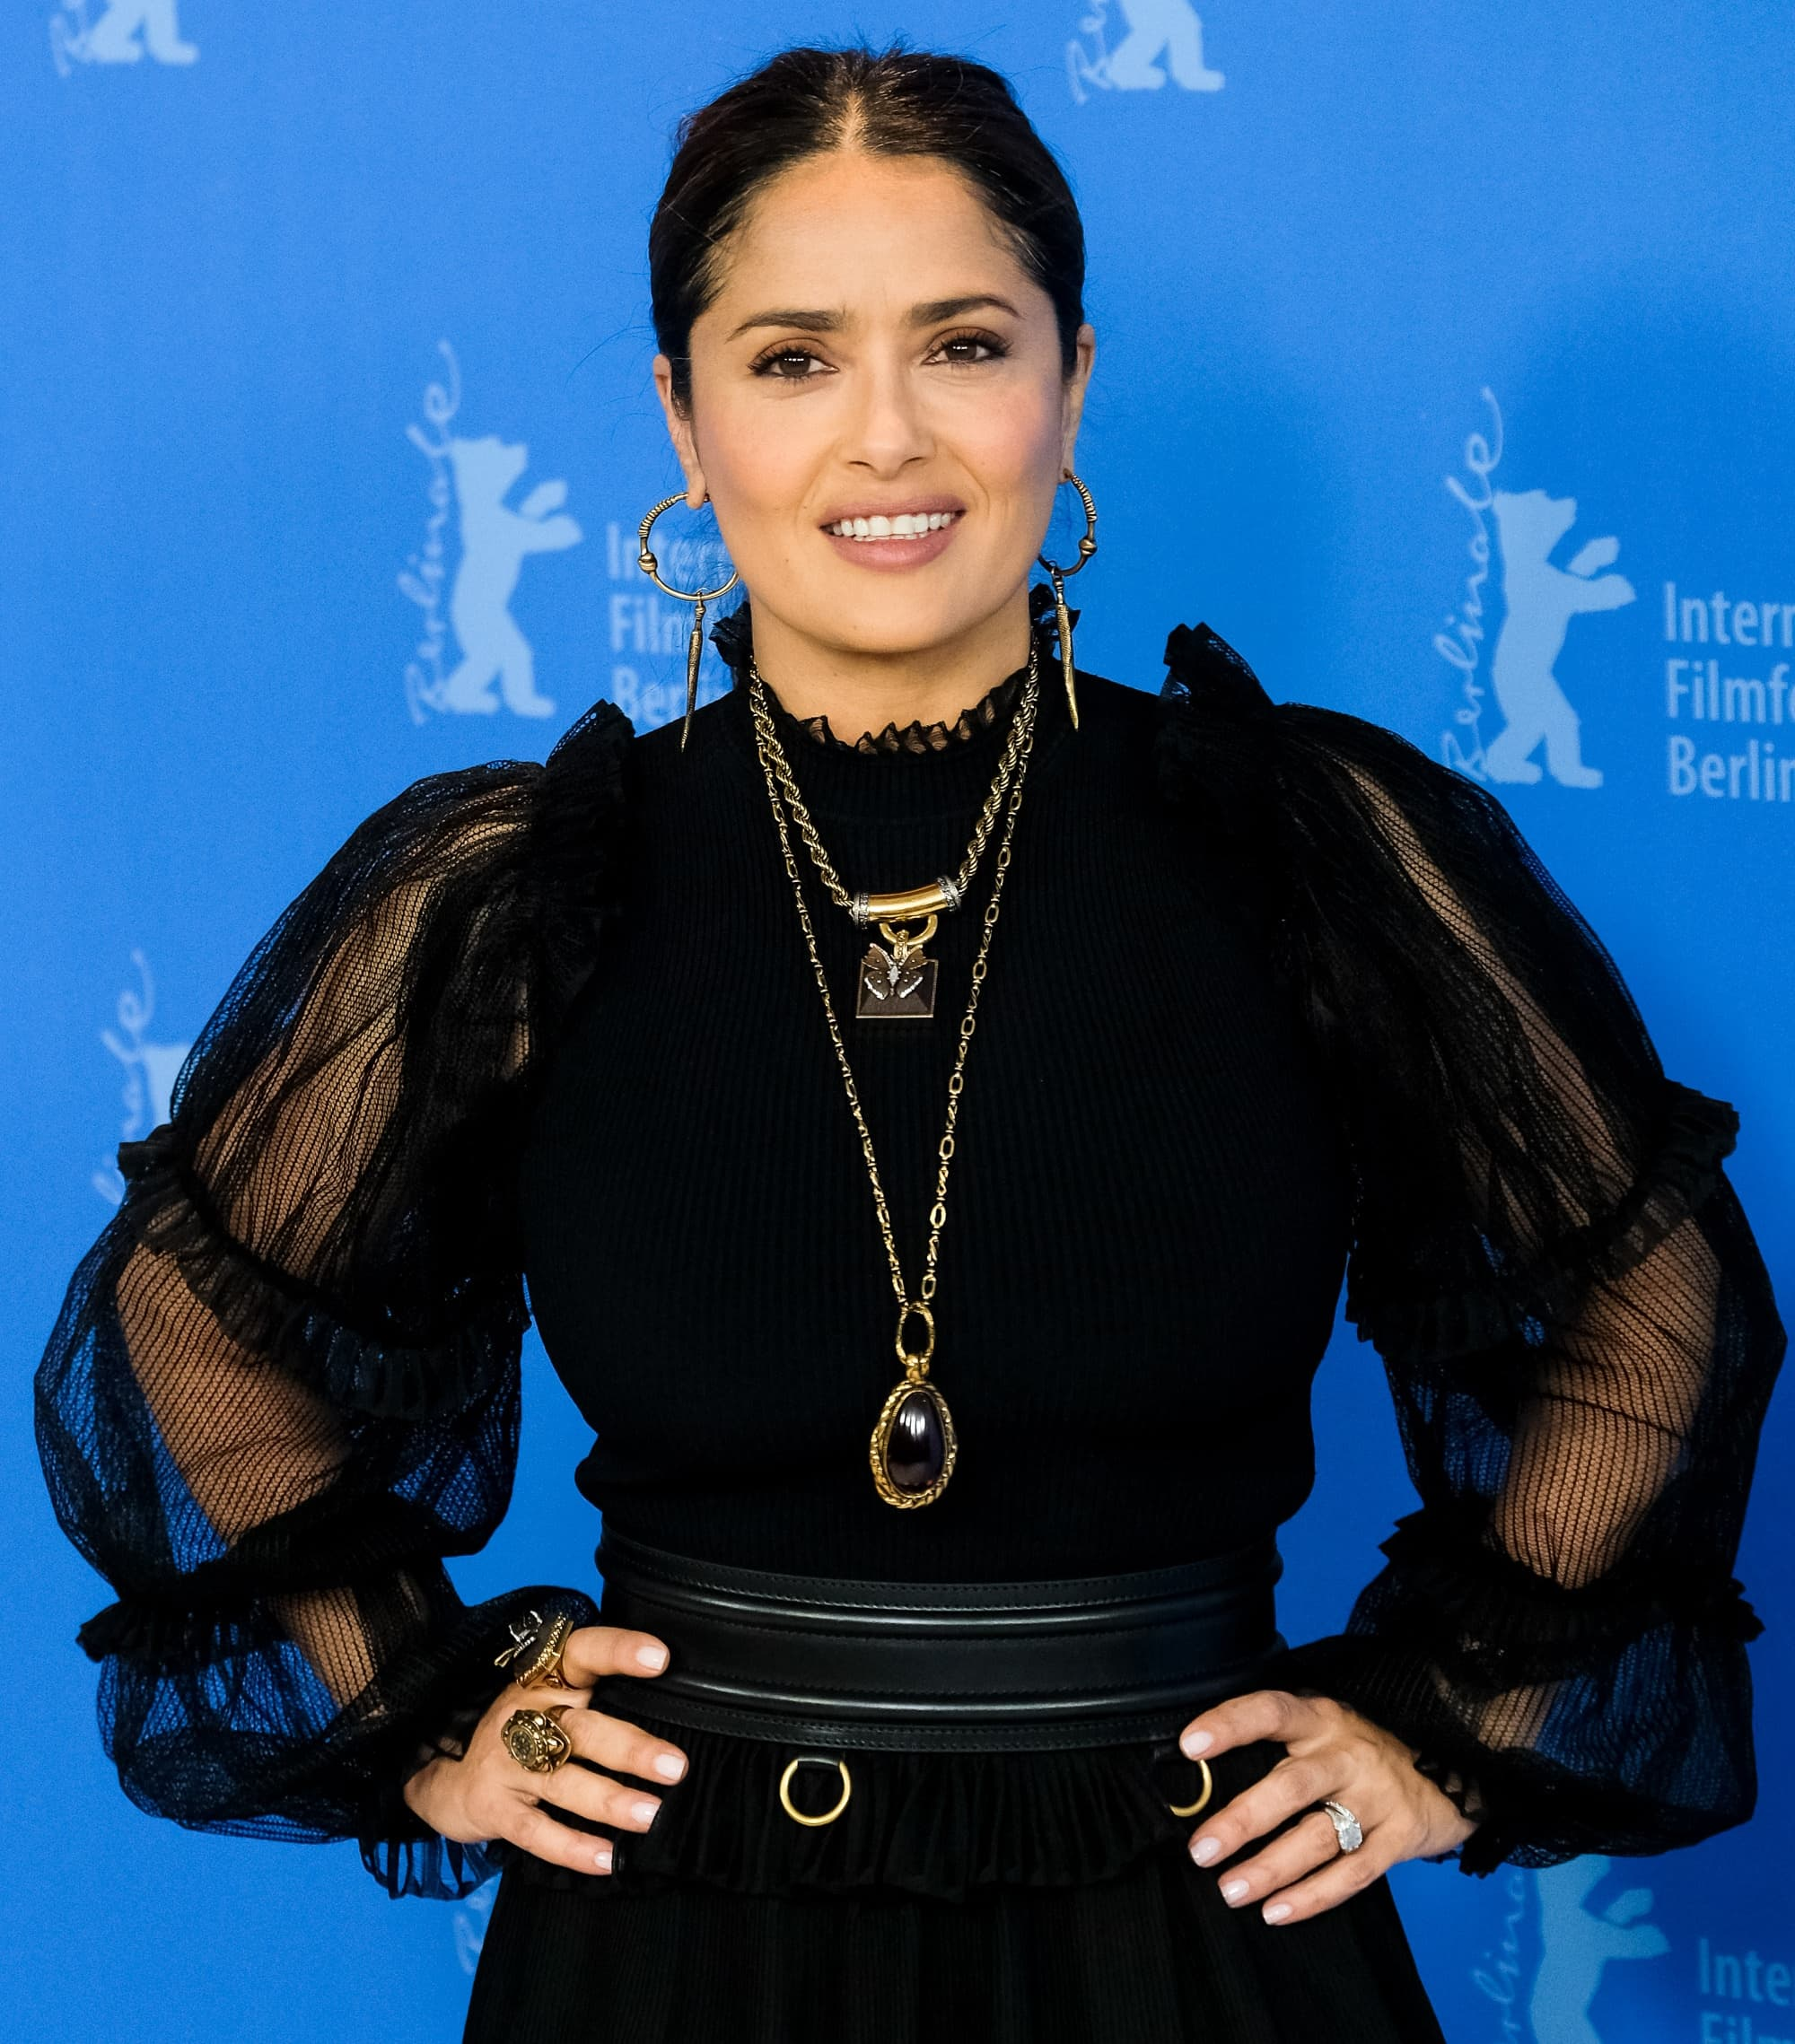 Salma Hayek is developing a comedy series about boobs